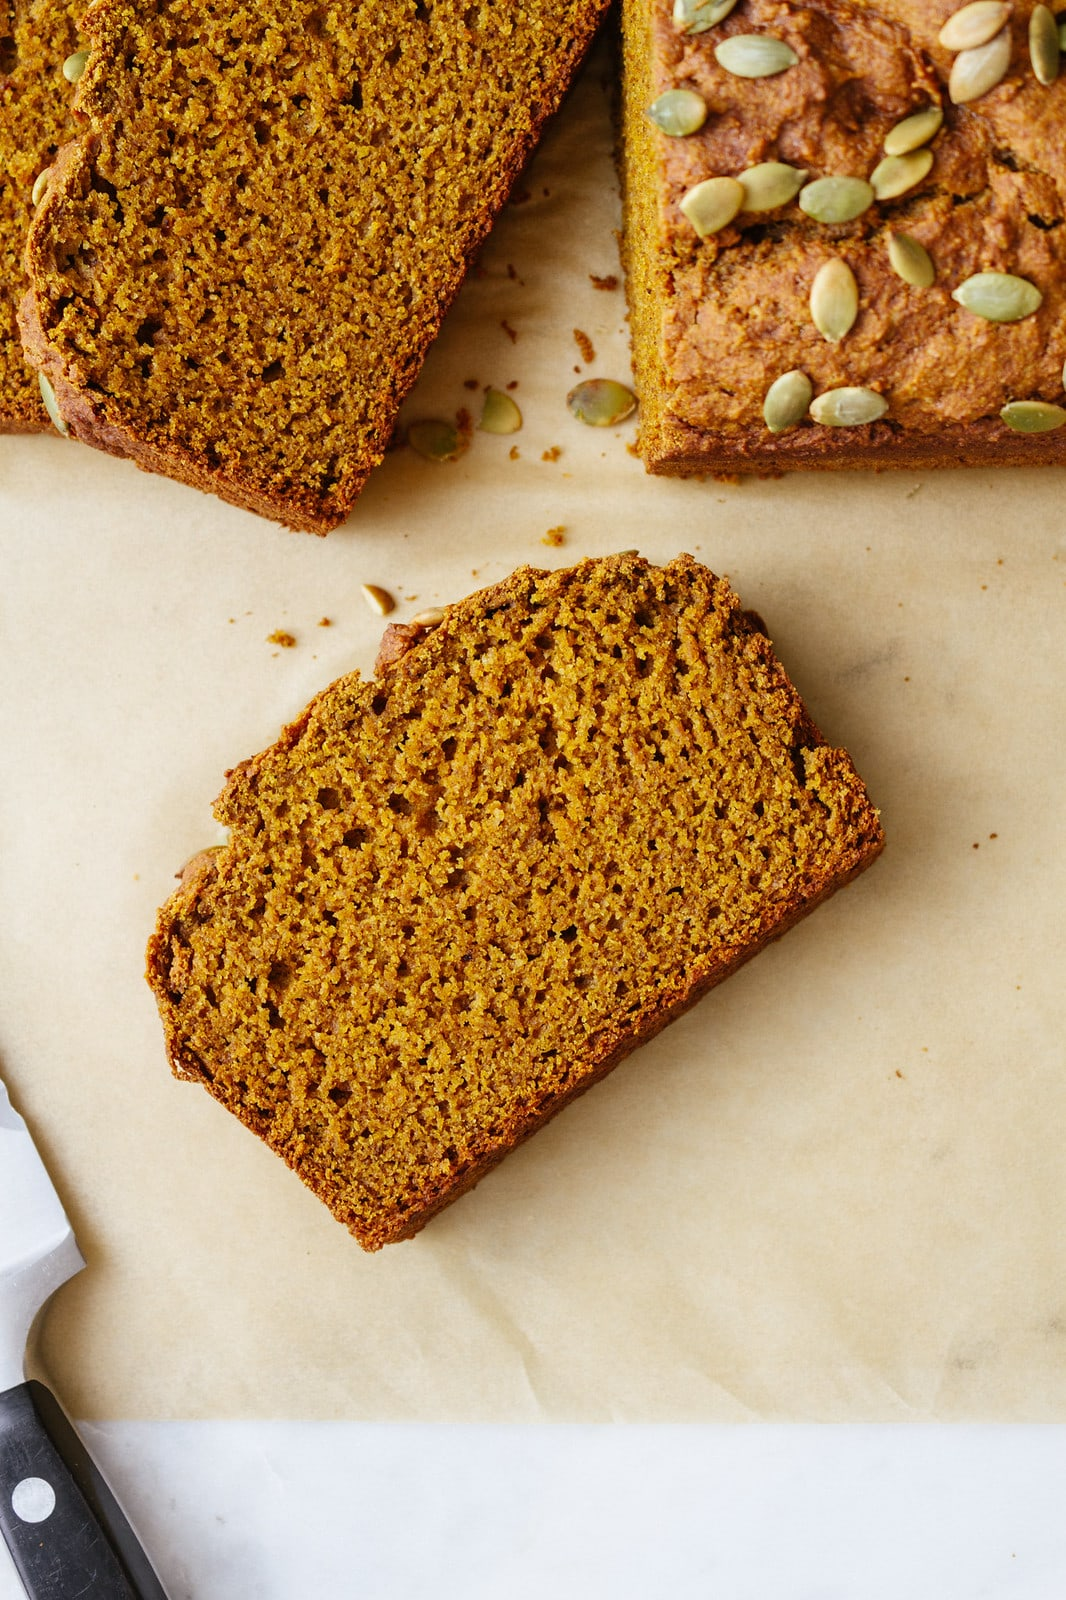 top down view of slice of vegan pumpkin bread on parchment paper with items surrounding.